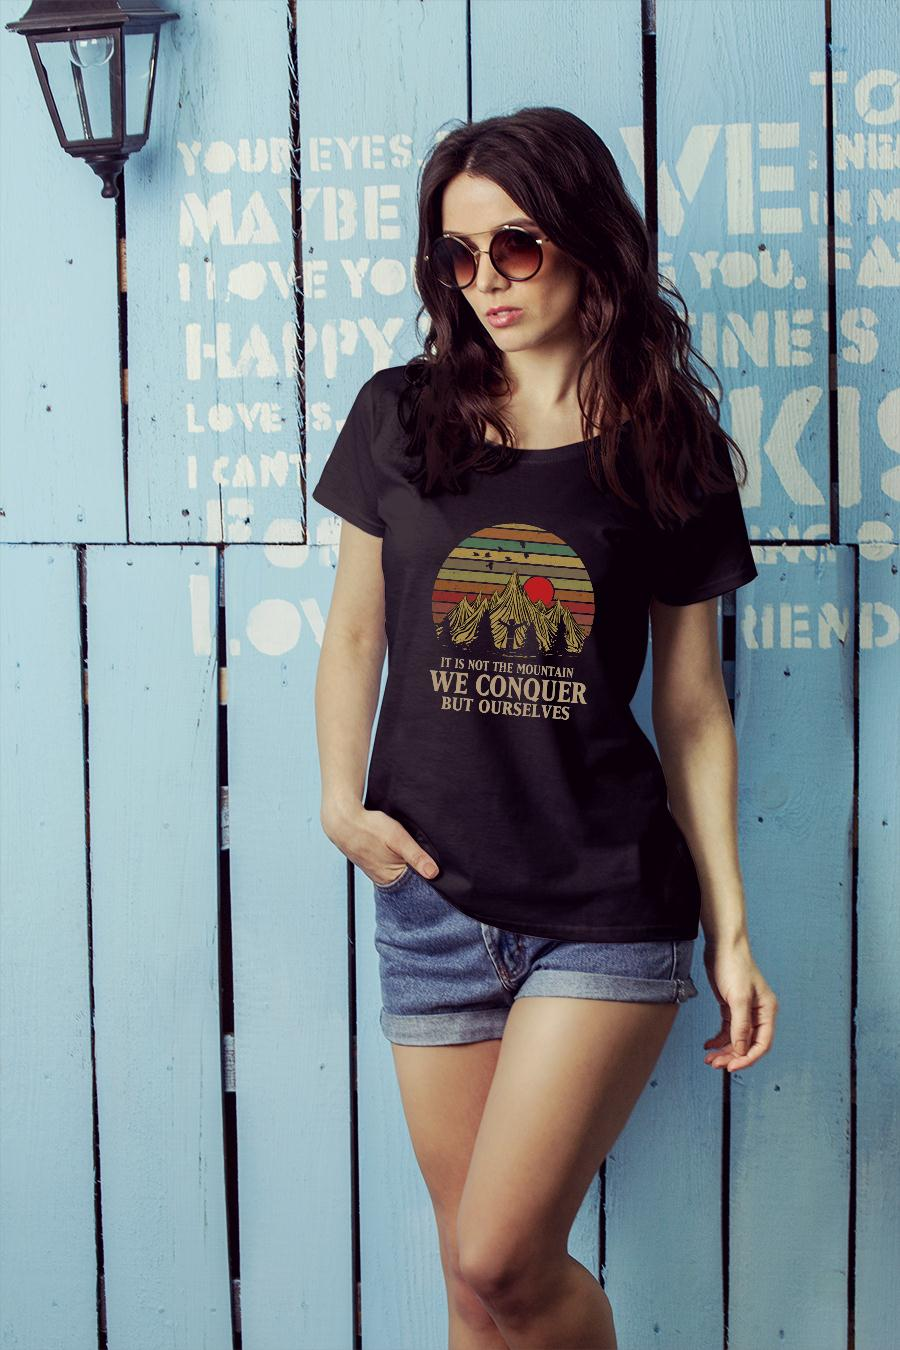 It Is Not The Mountain We Conquer But Ourselves shirt ladies tee official